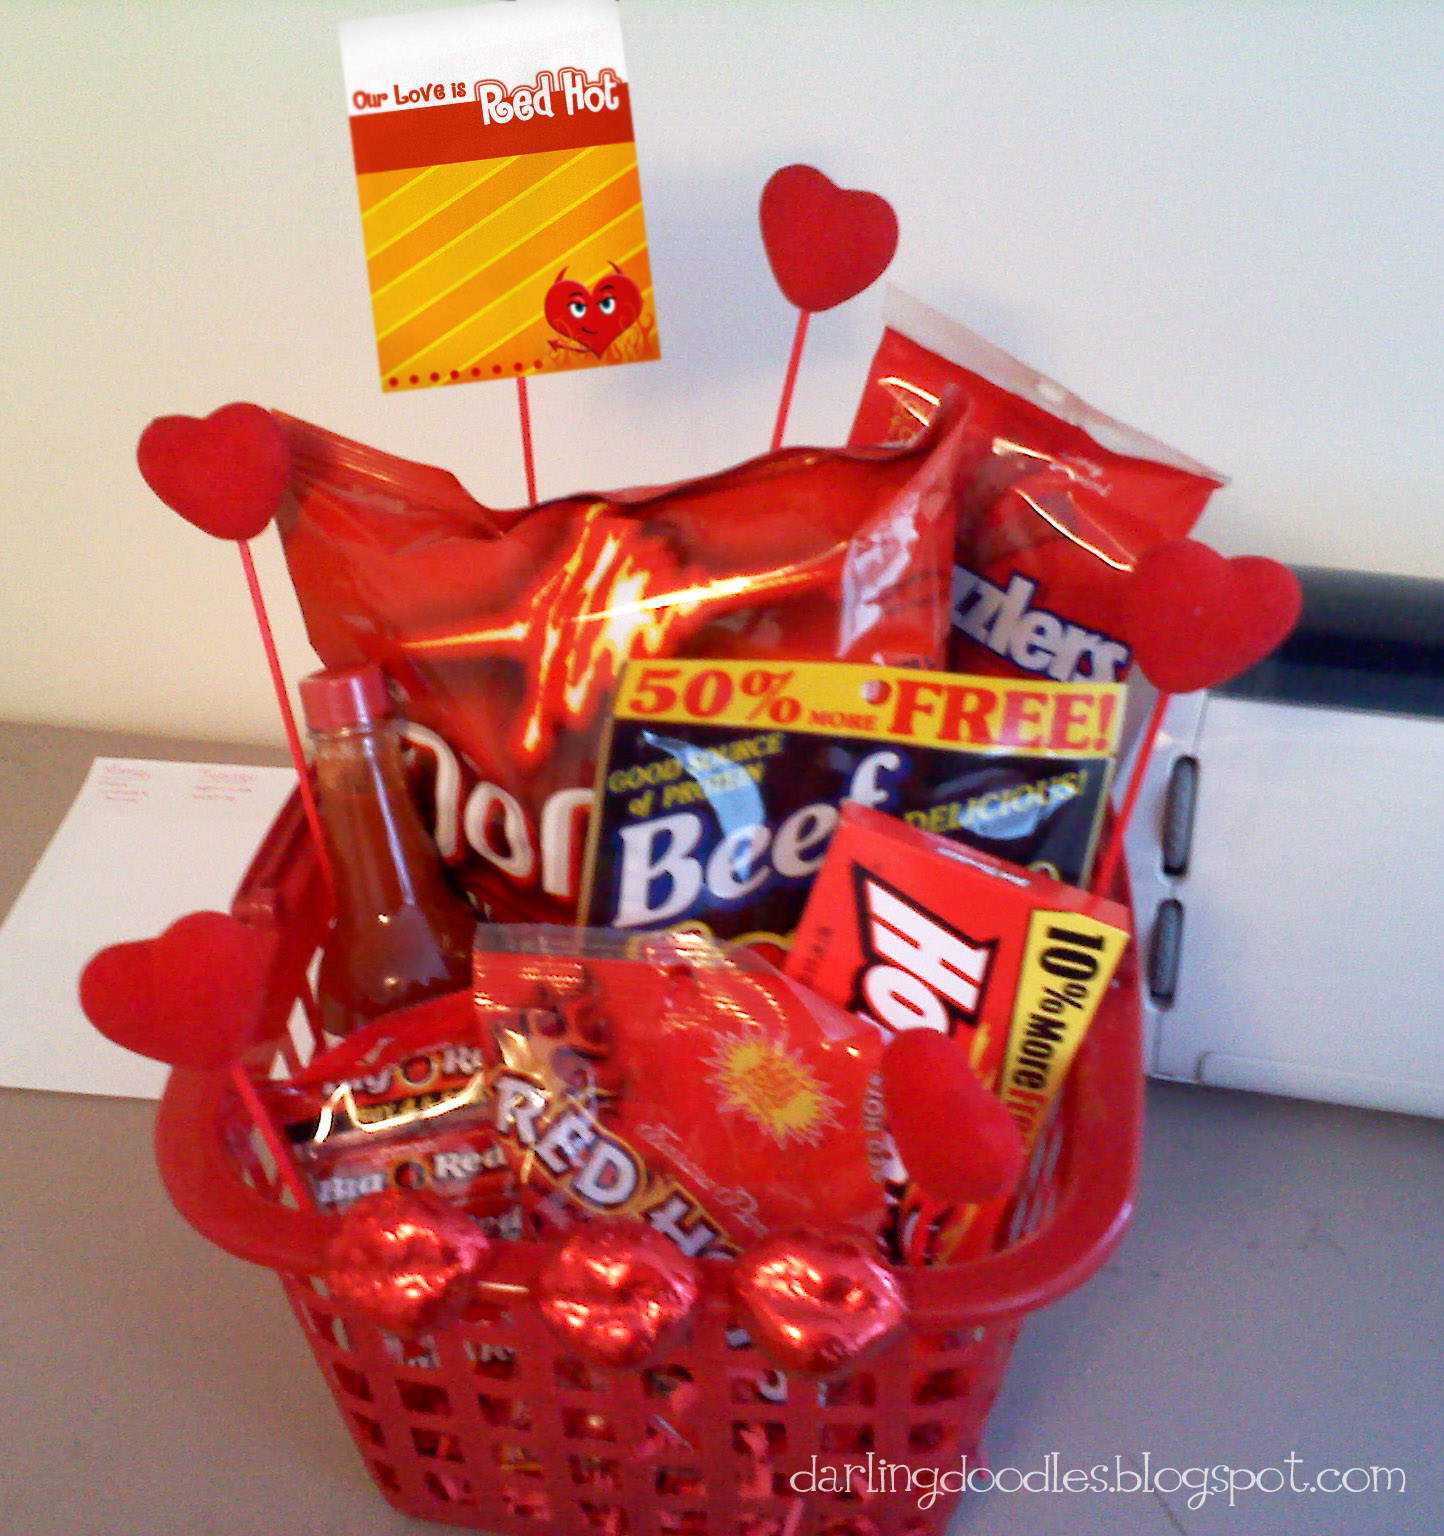 valentine's day gifts ideas for my boyfriend